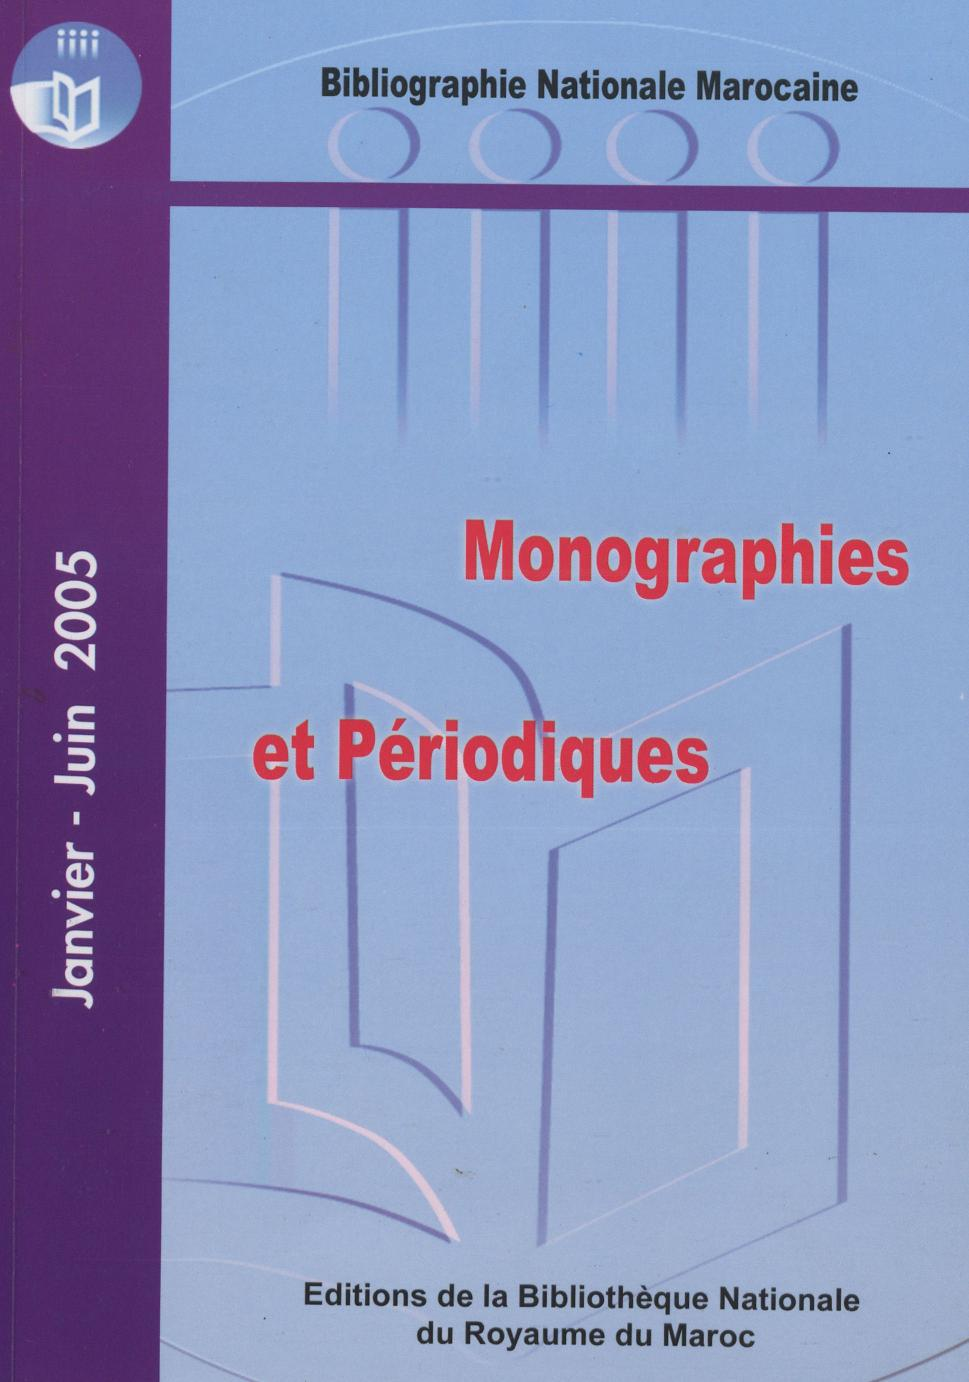 Bibliographie nationale : 2006